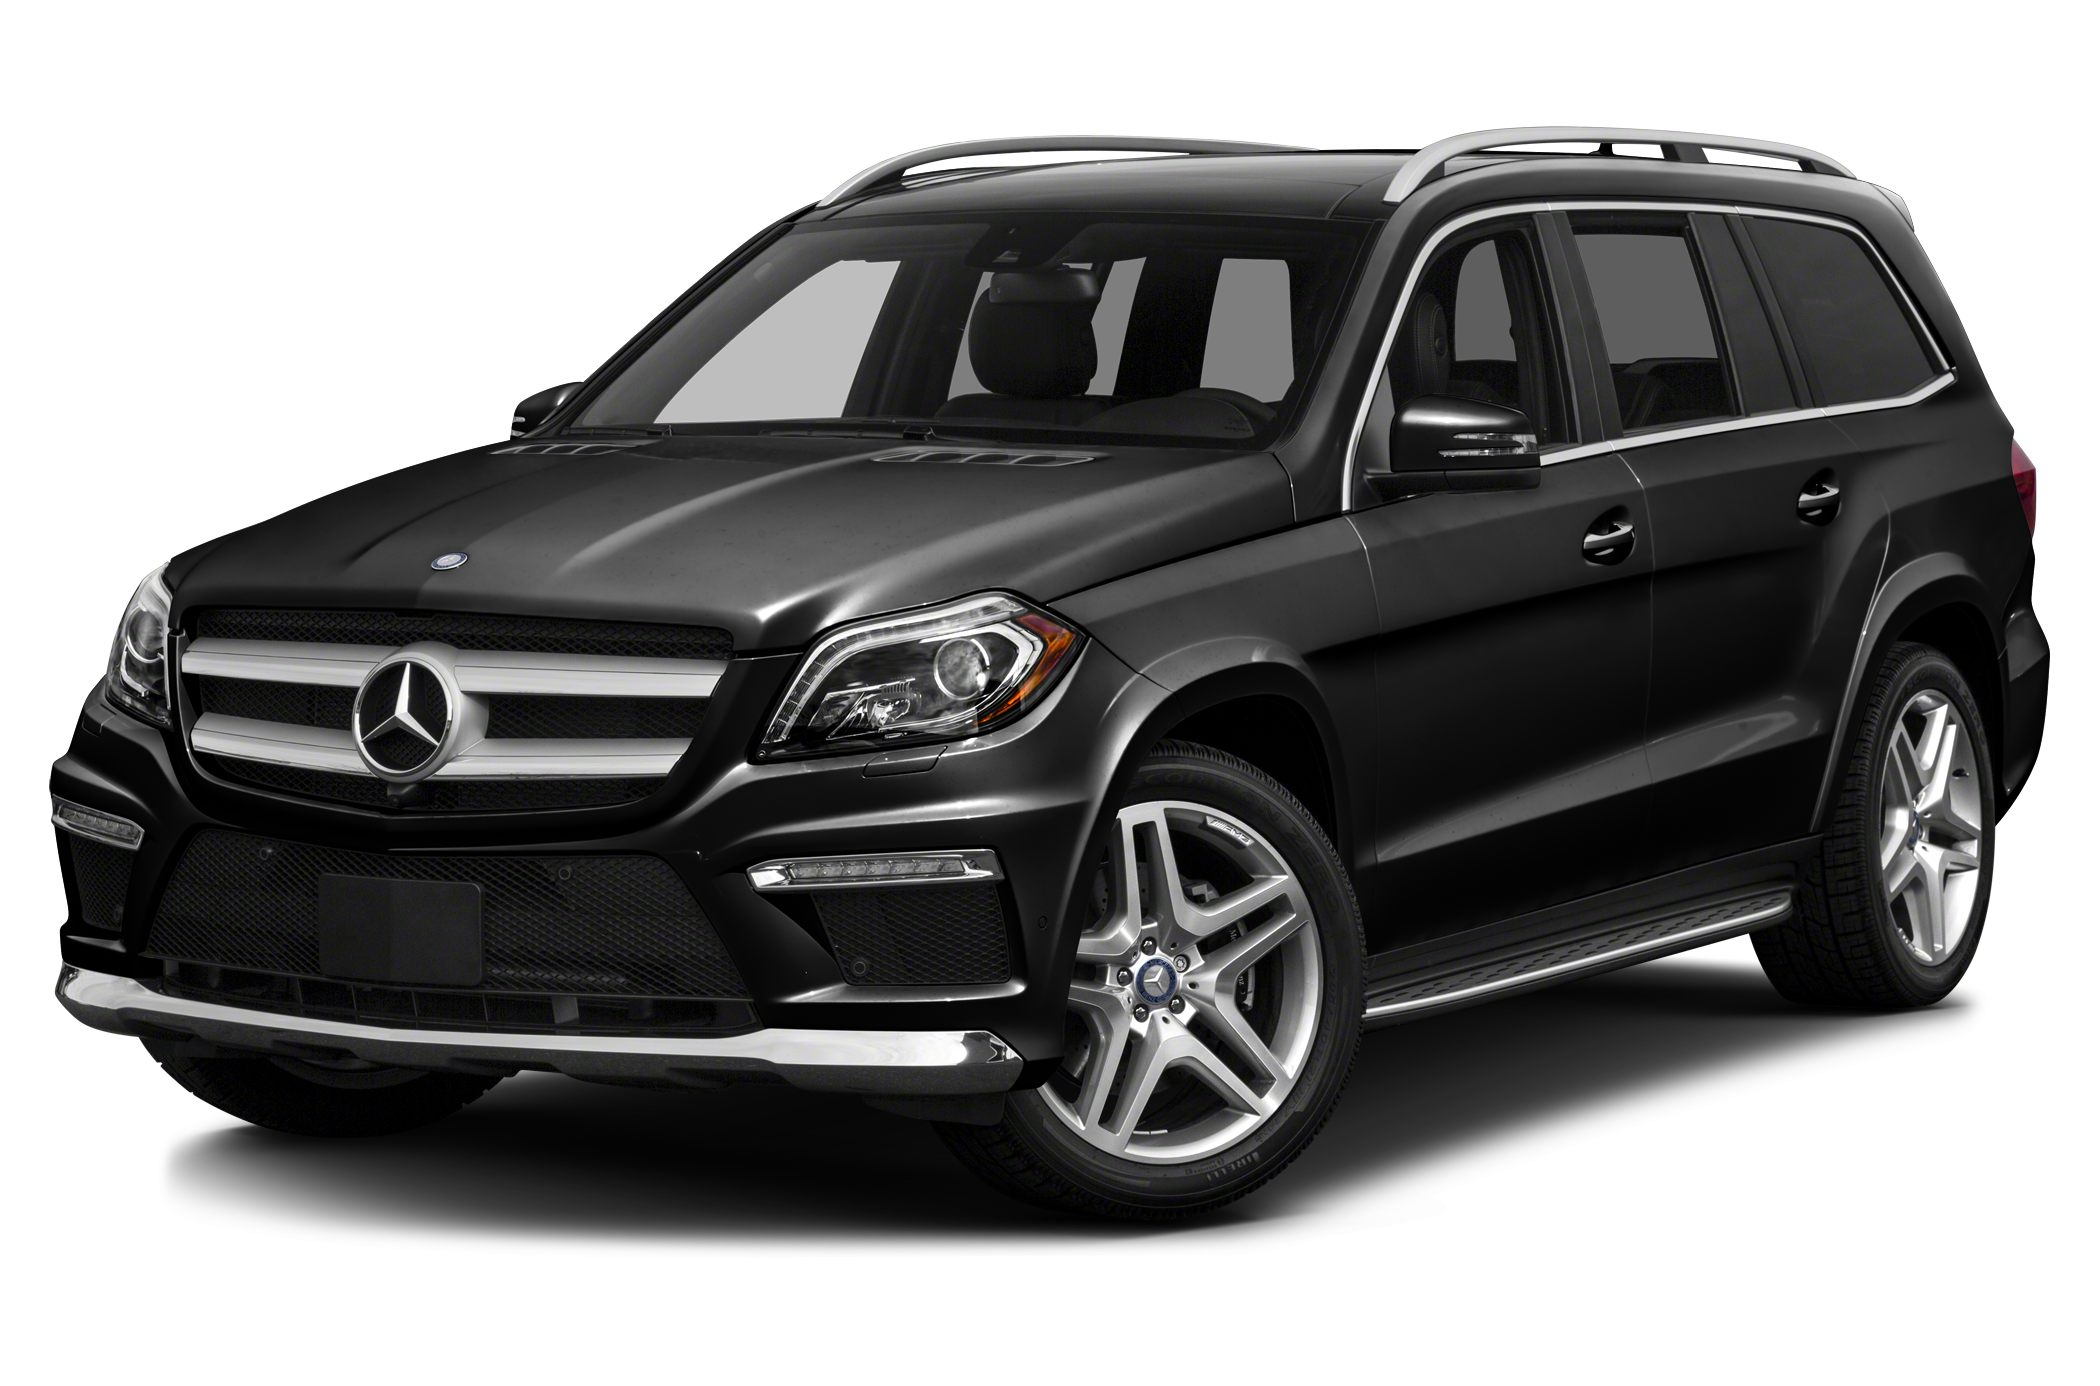 2015 Mercedes-Benz GL-Class GL550 4MATIC SUV for sale in Seattle for $89,989 with 8,086 miles